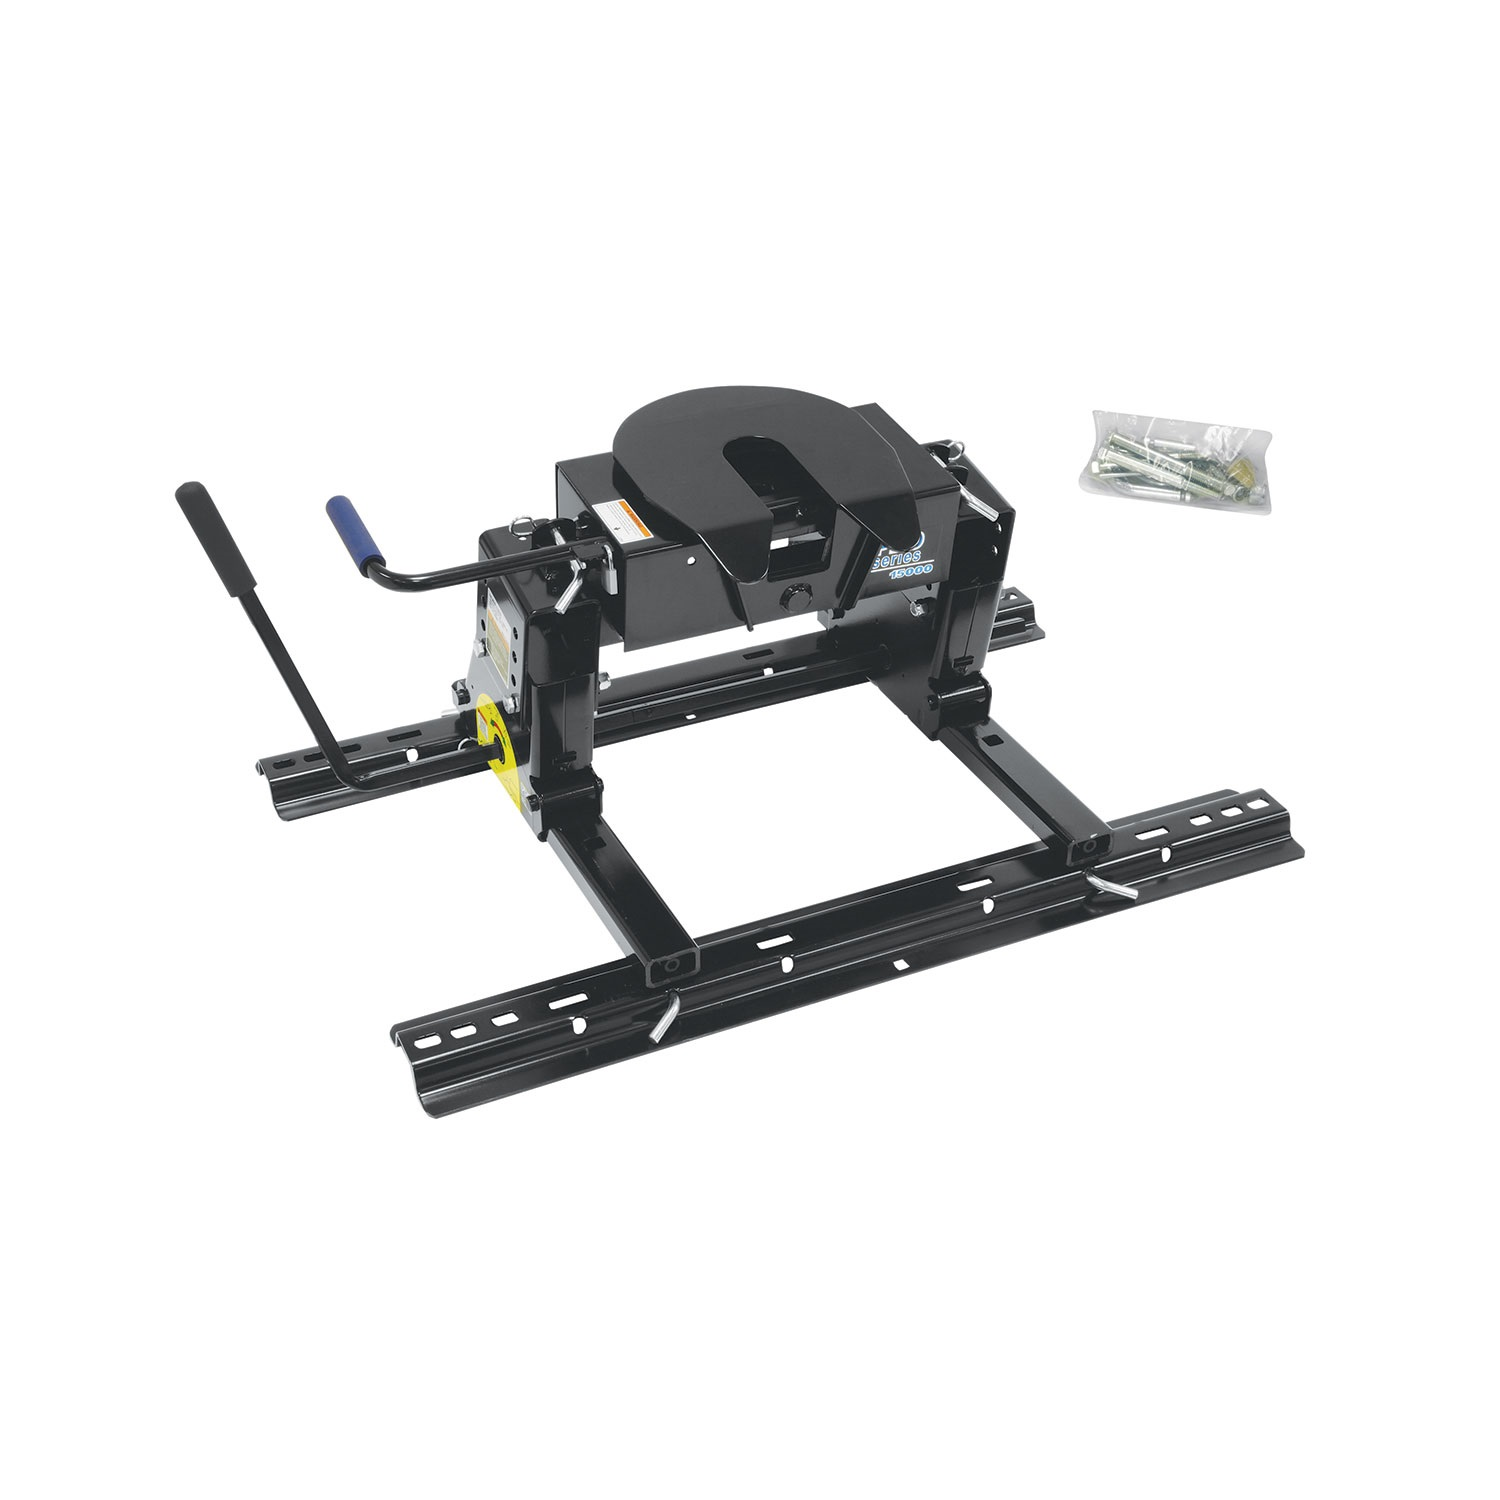 PRO-SERIES eCustomhitch 30076 Pro 15K Fifth 5th Wheel Tra...